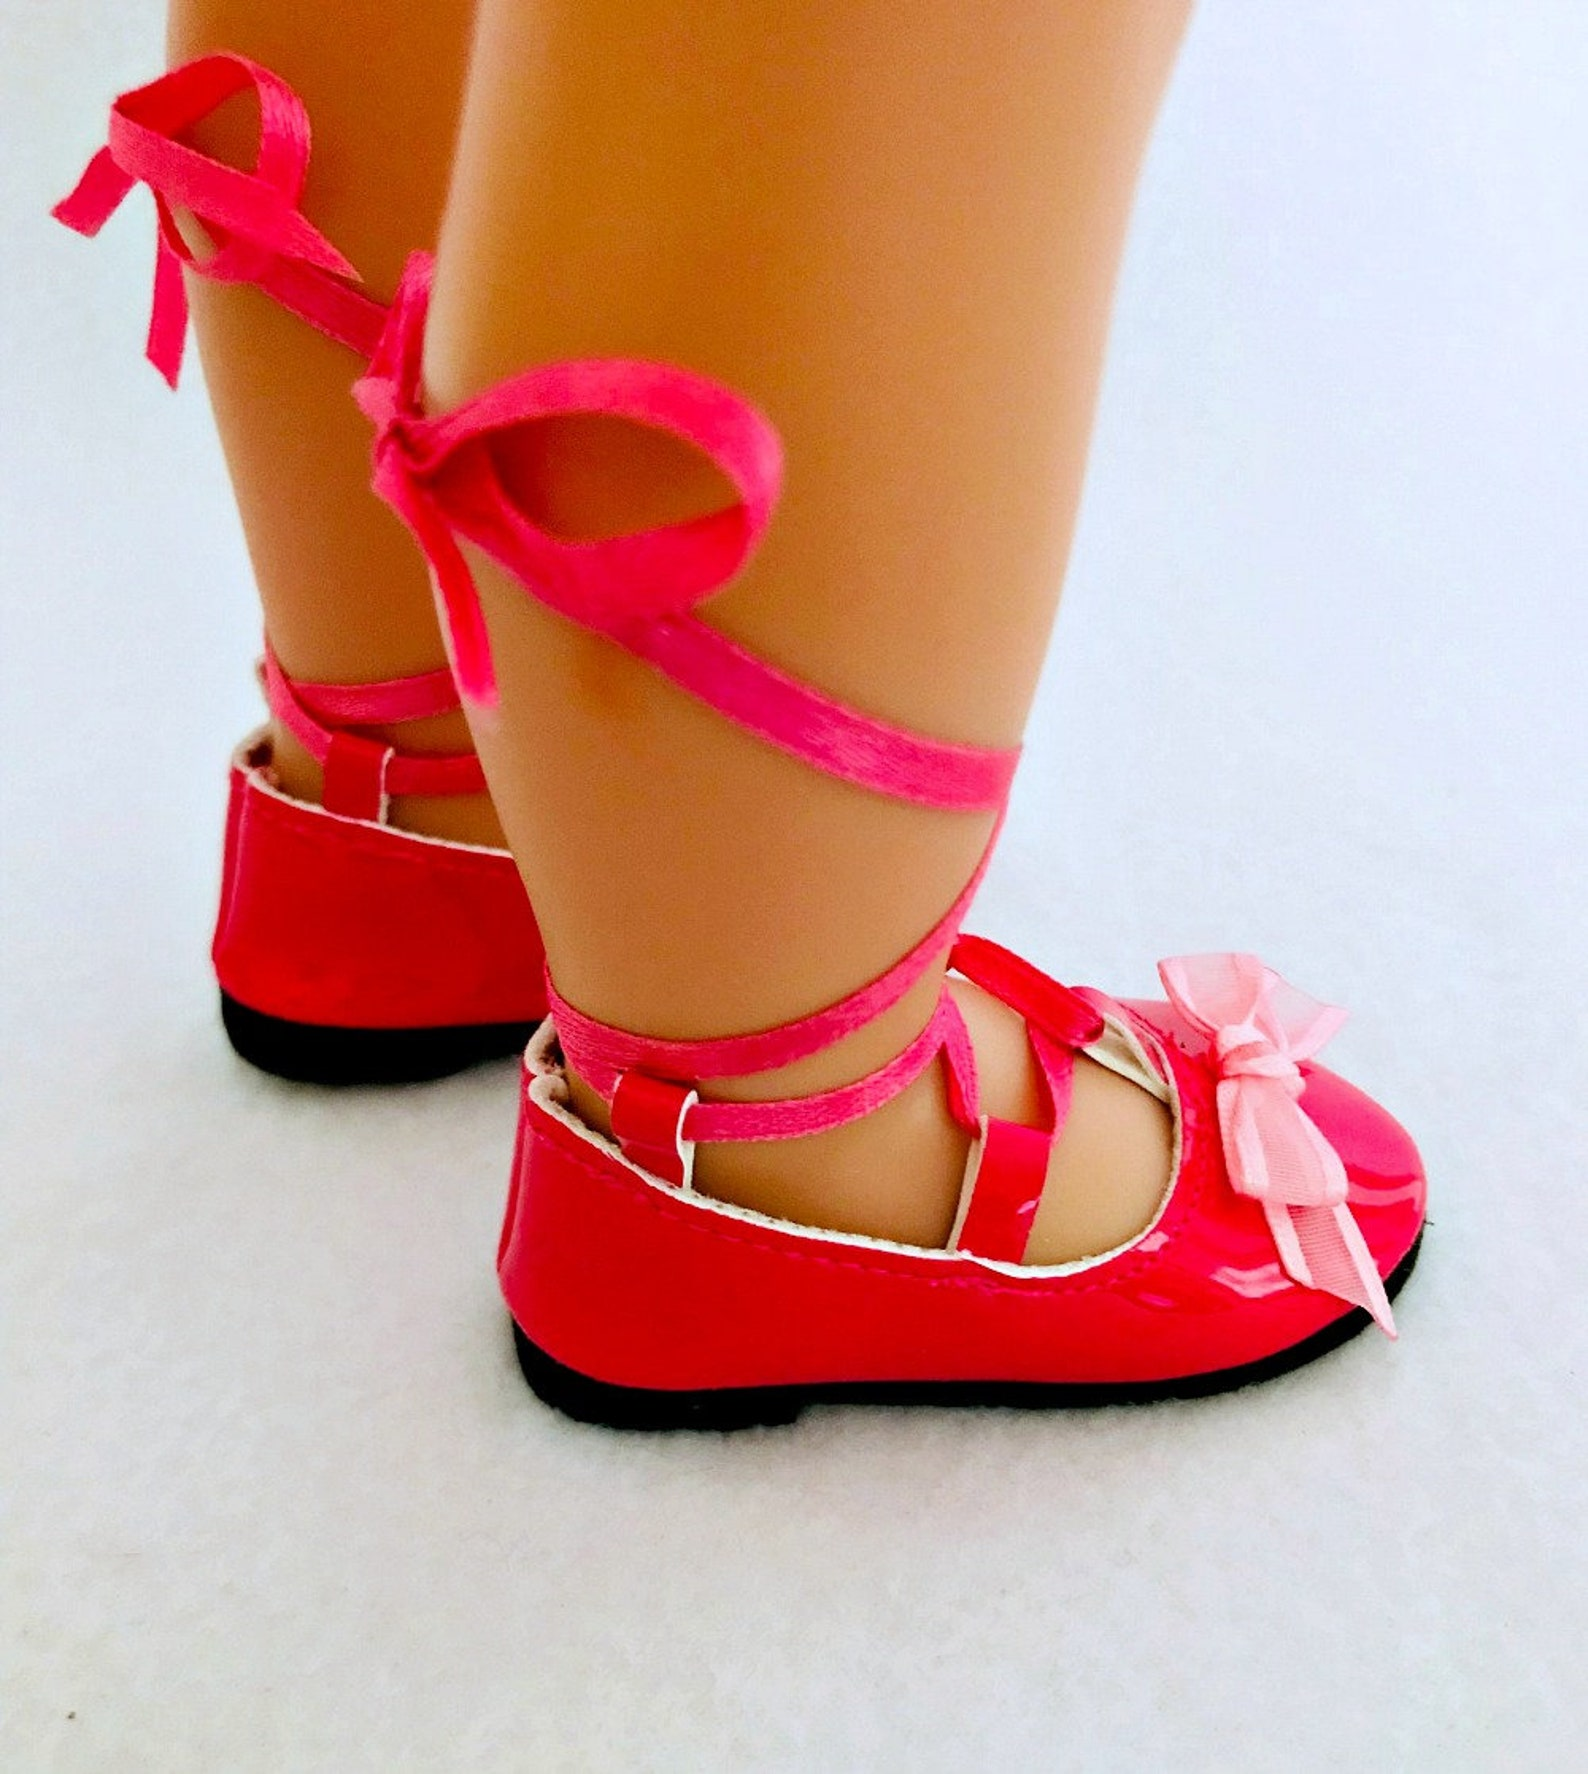 hot pink ballet flats for 18 inch doll - 18 inch doll shoes - ghillies for dolls - doll accessories - doll clothes - gifts for g